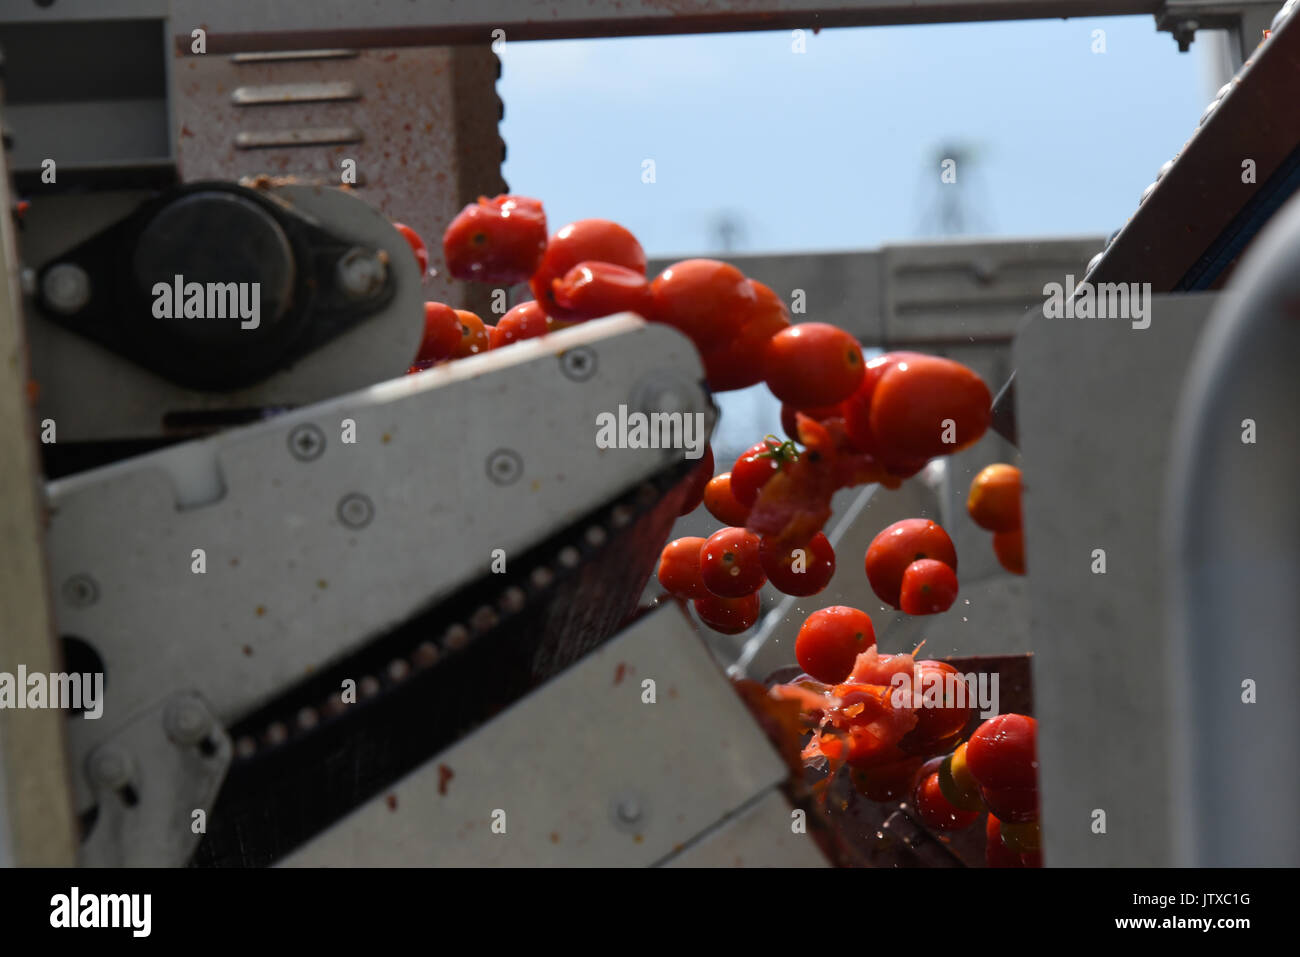 Tomato Factory Stock Photos & Tomato Factory Stock Images - Alamy